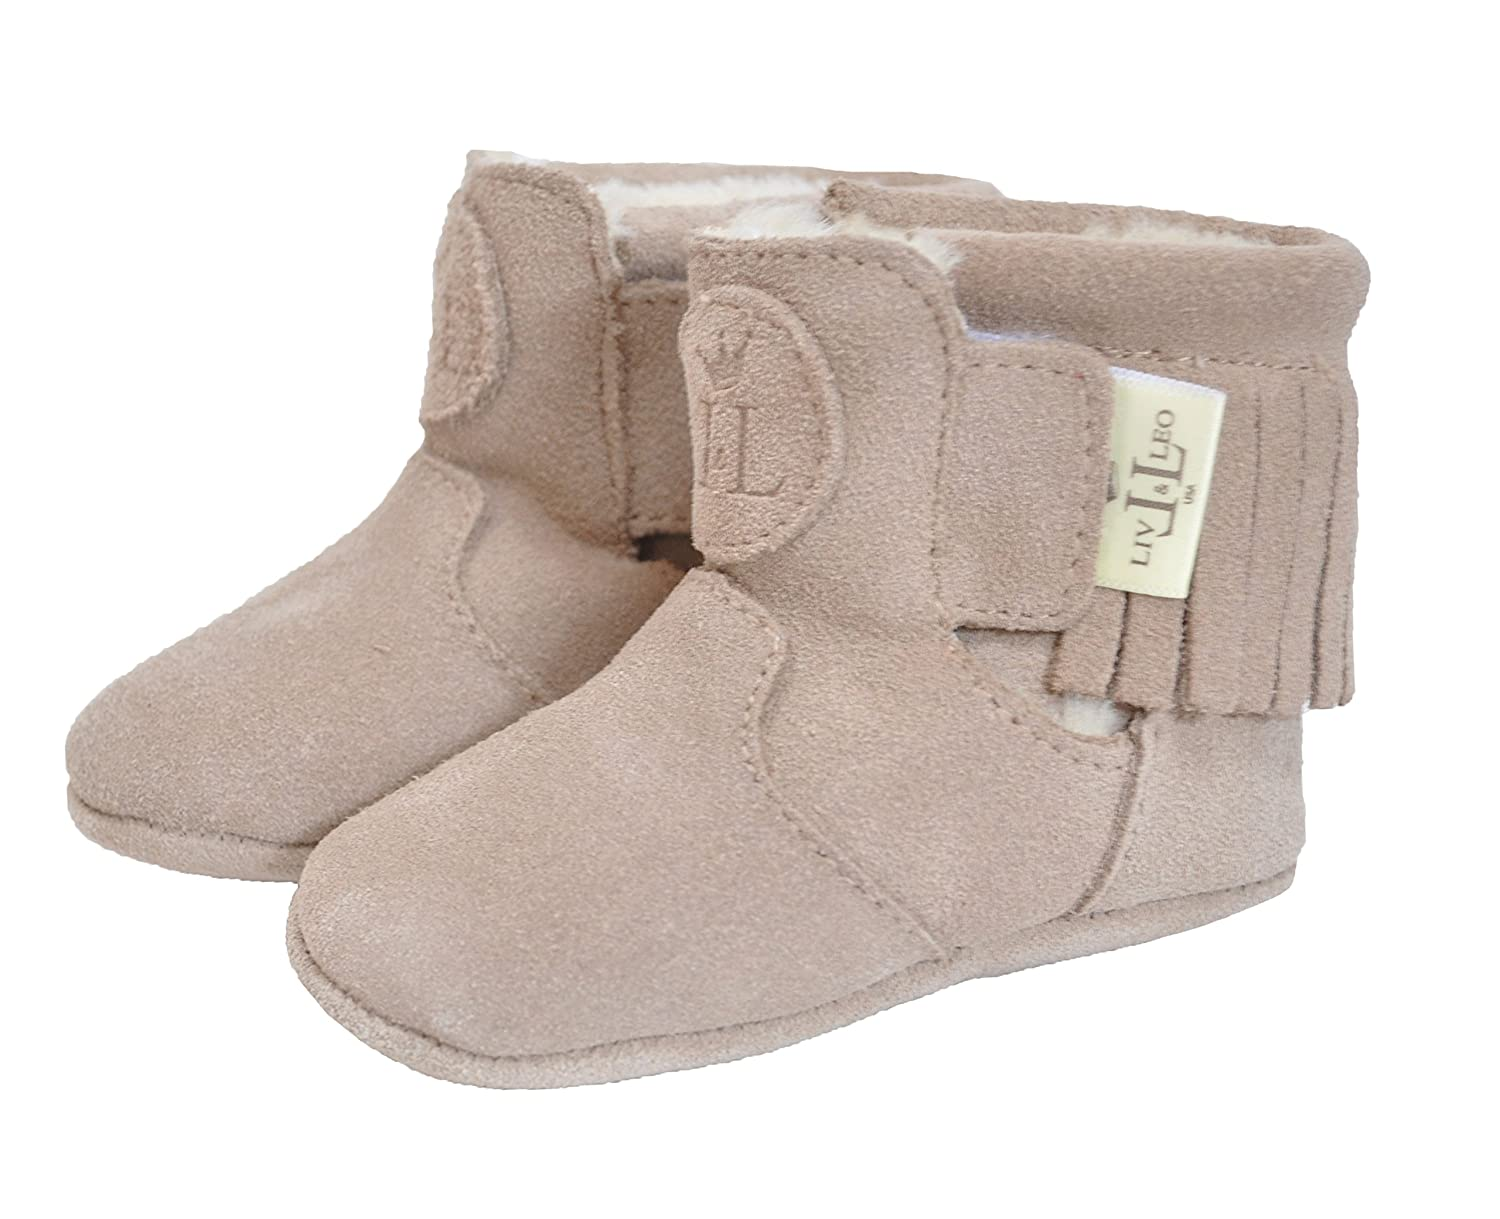 Heart Collection Liv /& Leo Baby Girls Moccasins Soft Sole Crib Shoes Slip-on 100/% Leather